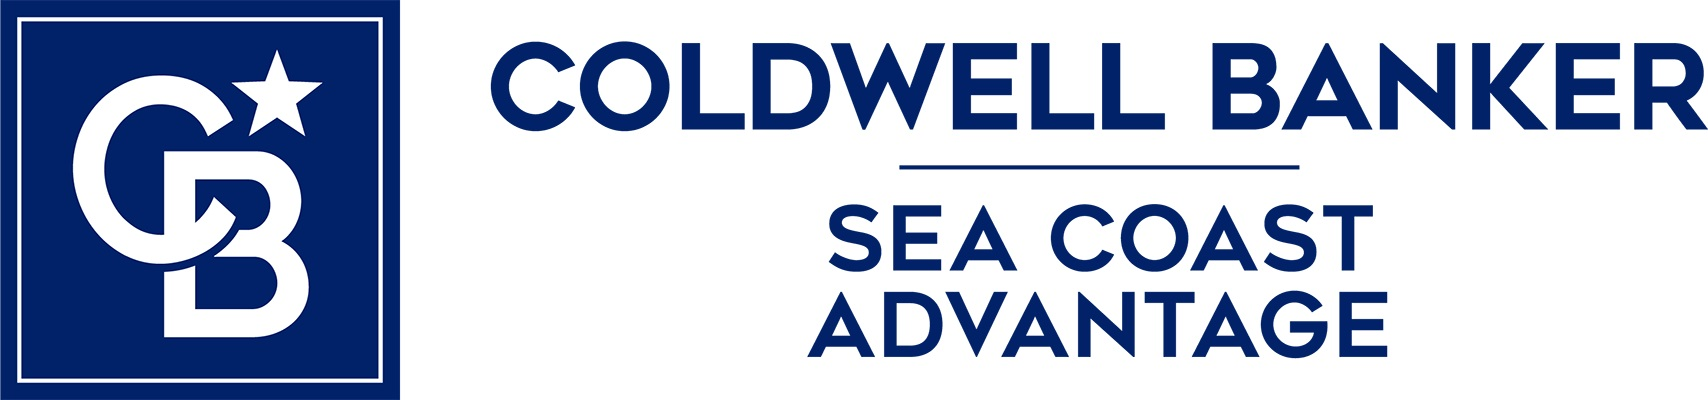 Kathy Marcinowski - Coldwell Banker Sea Coast Advantage Realty